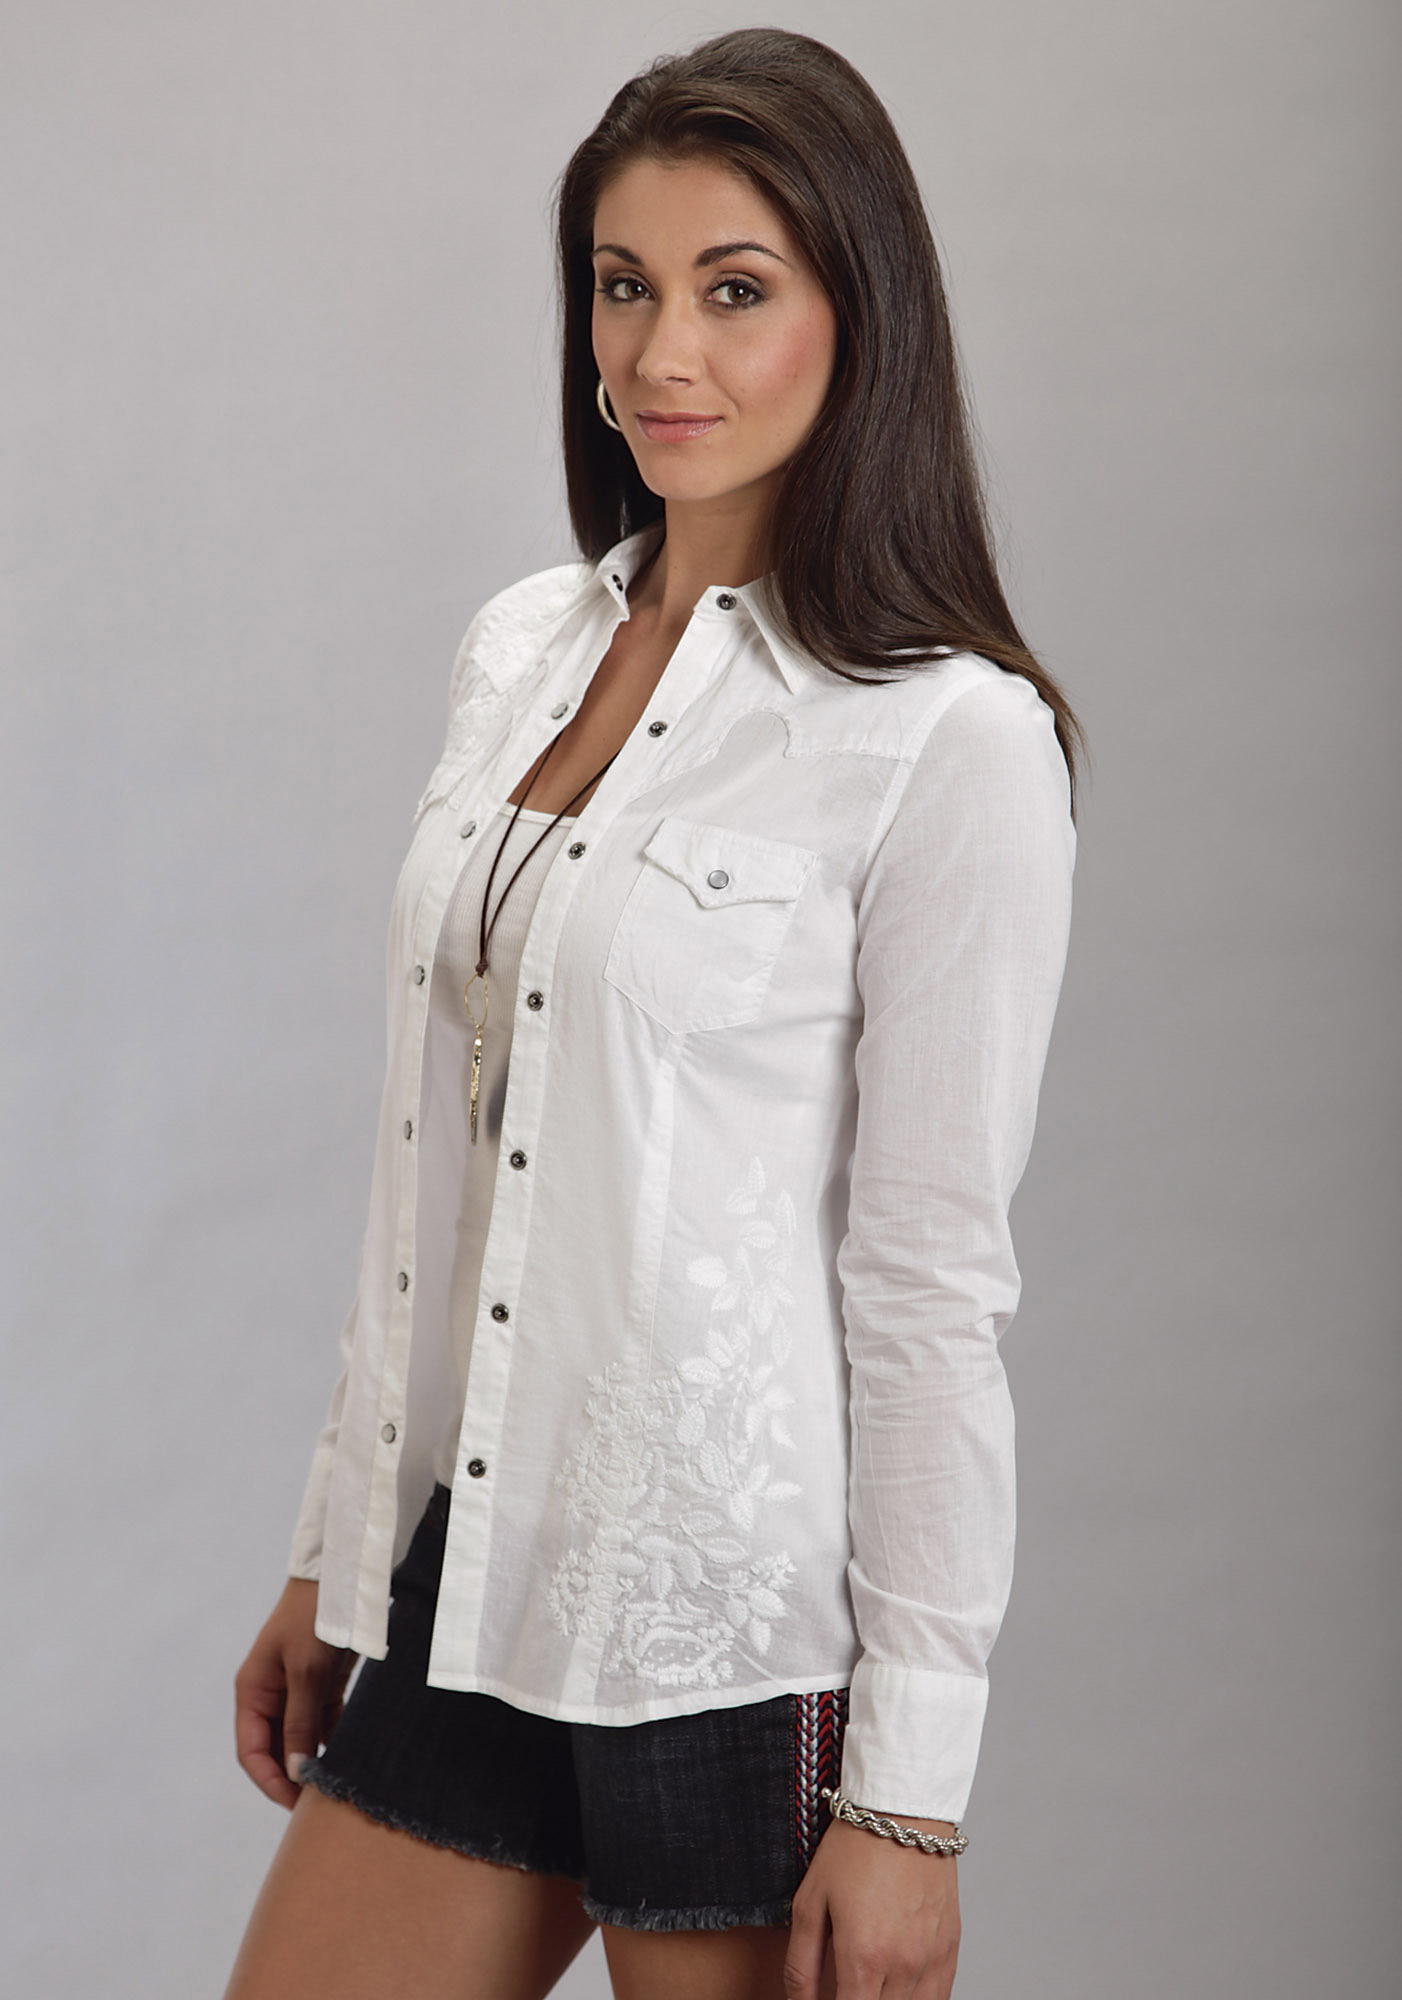 Womens Western shirts are some of the most beautiful, romantic, and sexy shirts designed. Your personal Cowgirl Shoppers here at cuttackfirstboutique.cf have put together a stunning selection of Western styles from long sleeve shirts to sleeveless and some stunning embroidered cuttackfirstboutique.cf sophistication and the romance of the west, but most importantly flatter your figure at the same time.